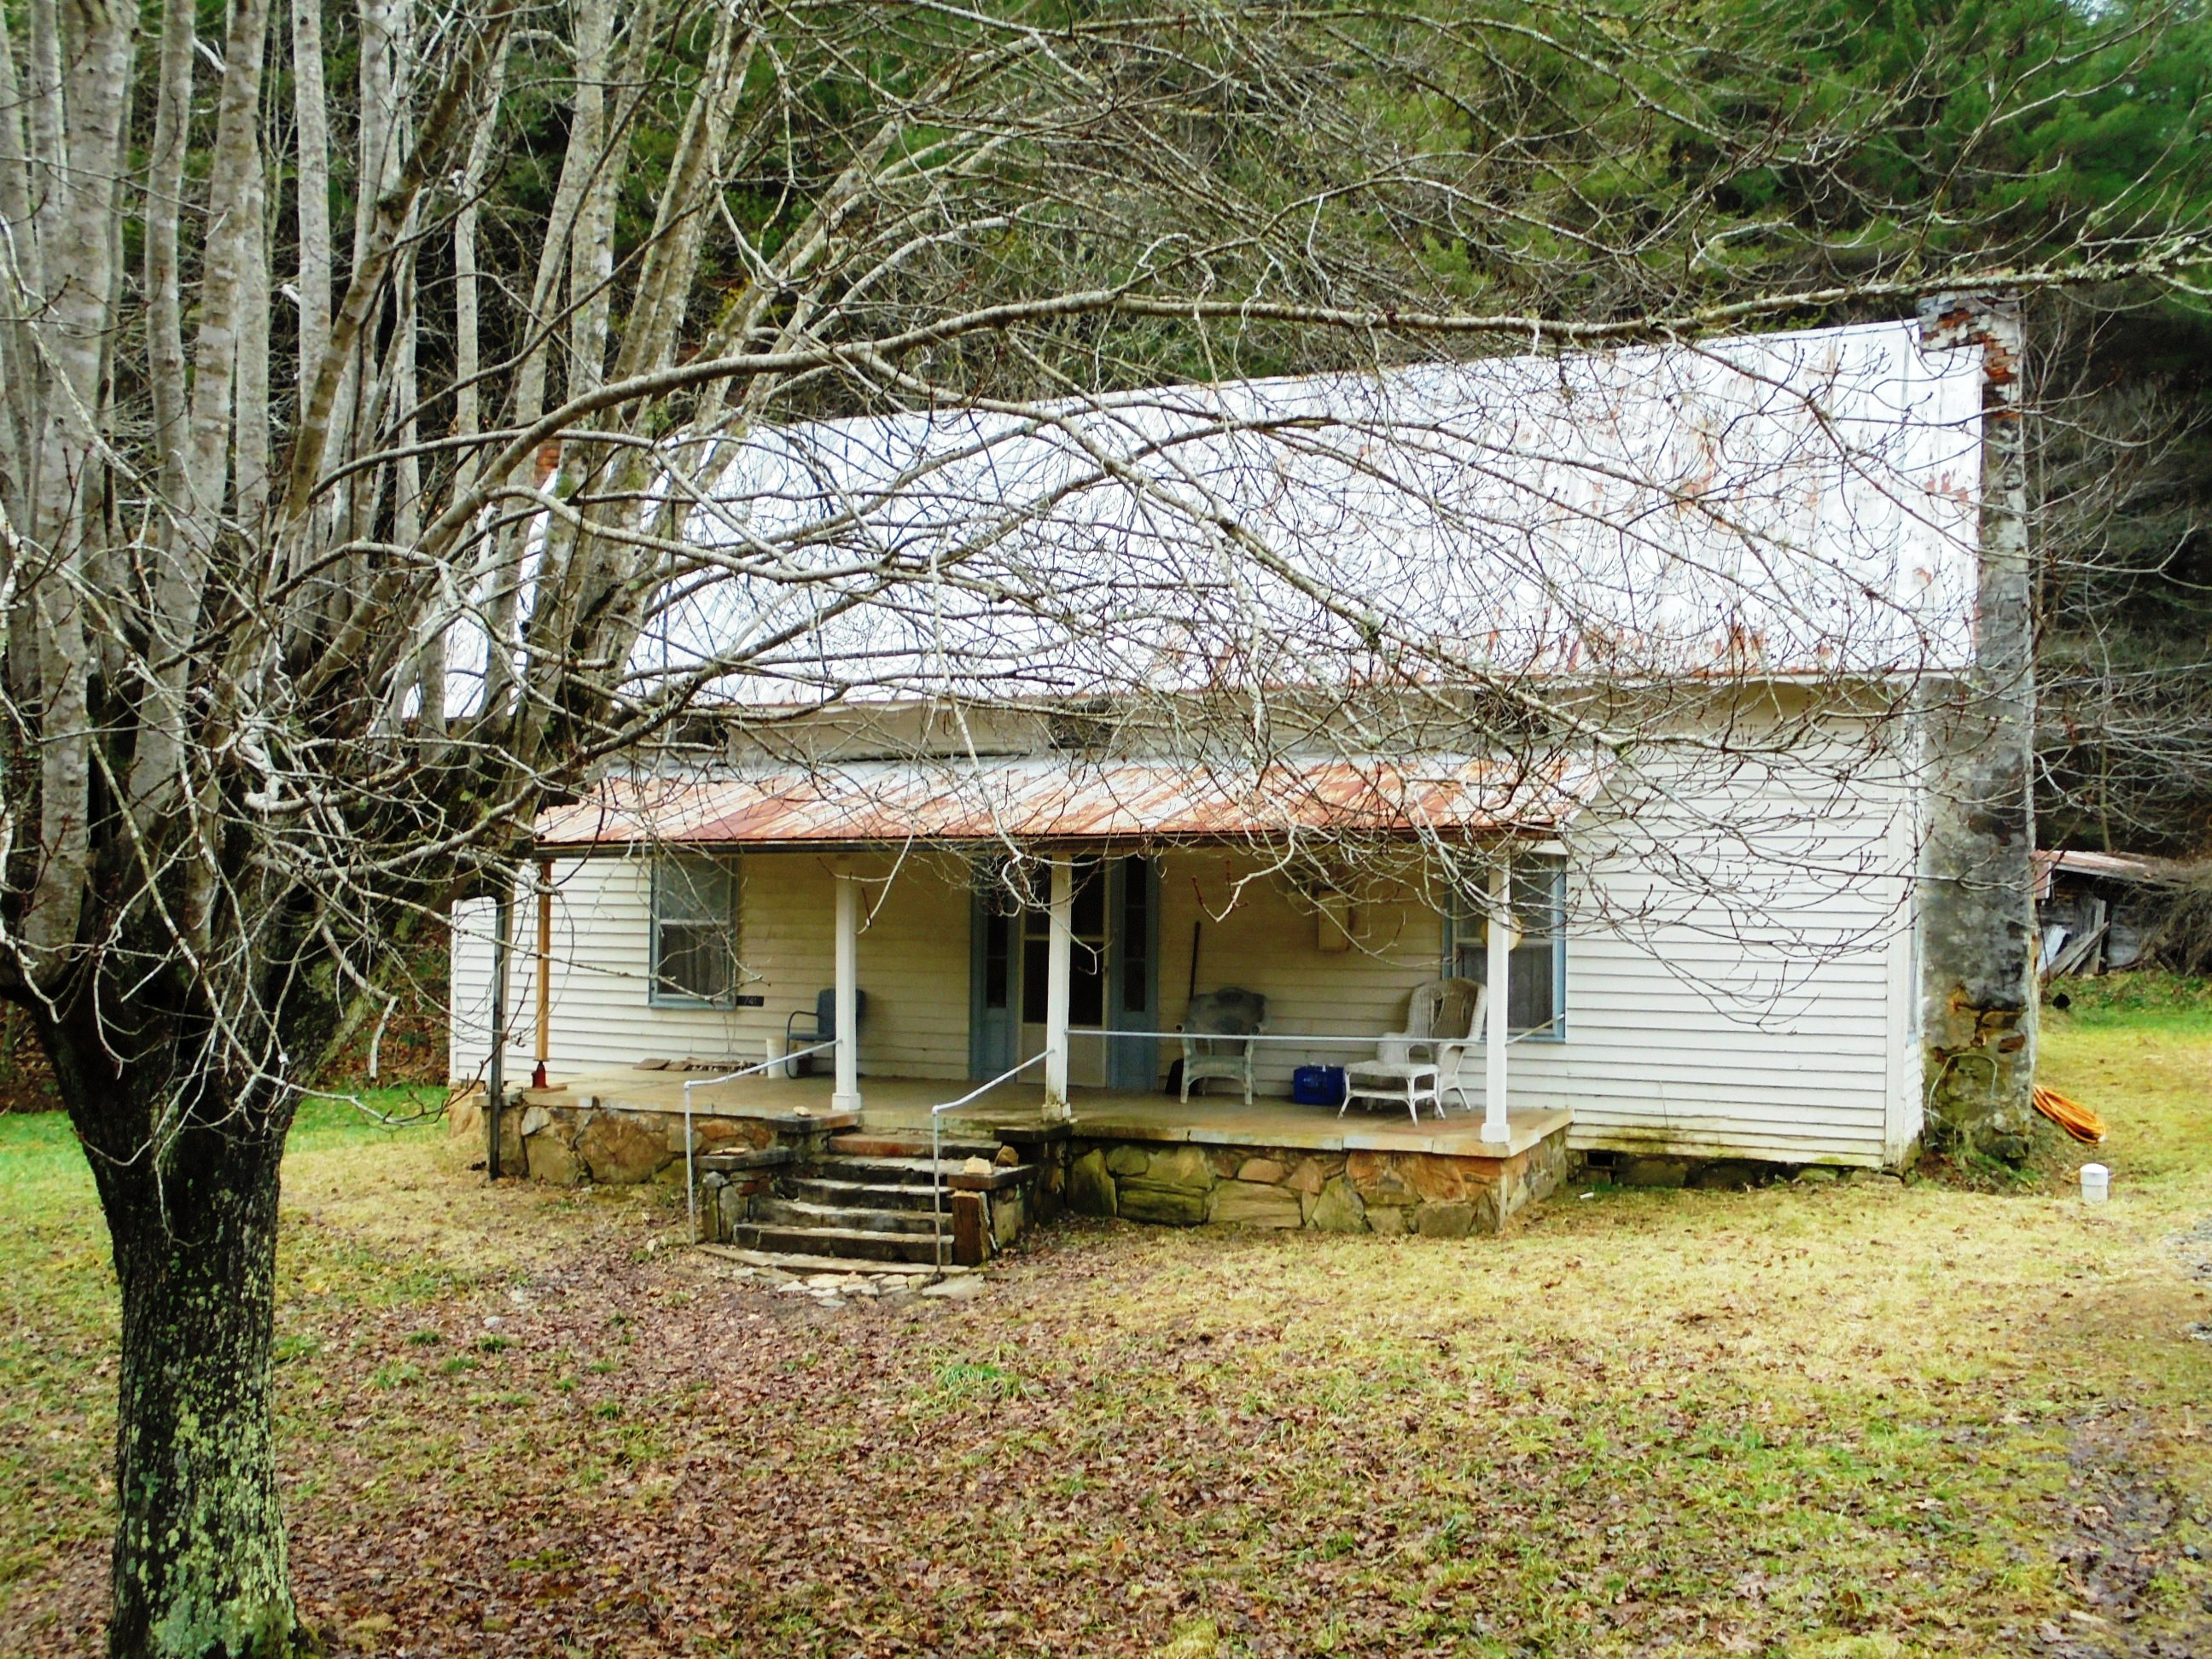 houston blog realty print for st mountain town front asheville sale nc and posts cabins